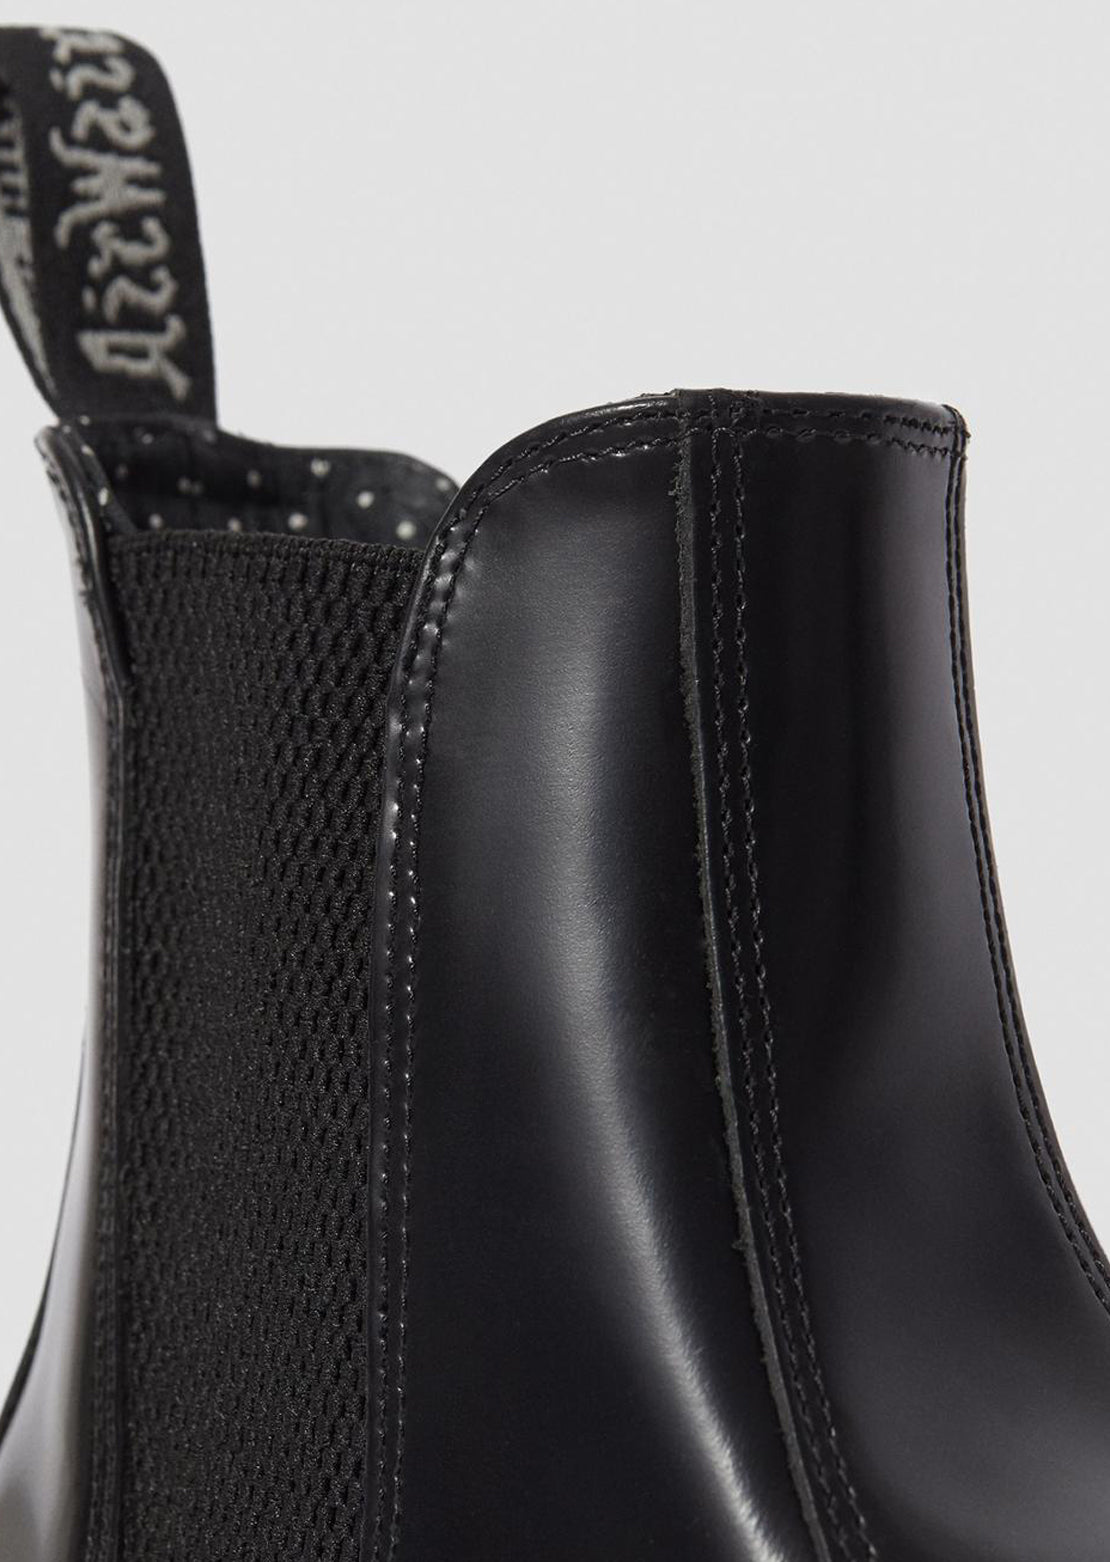 Dr.Martens Women's Flora Boots Polished Smooth Black